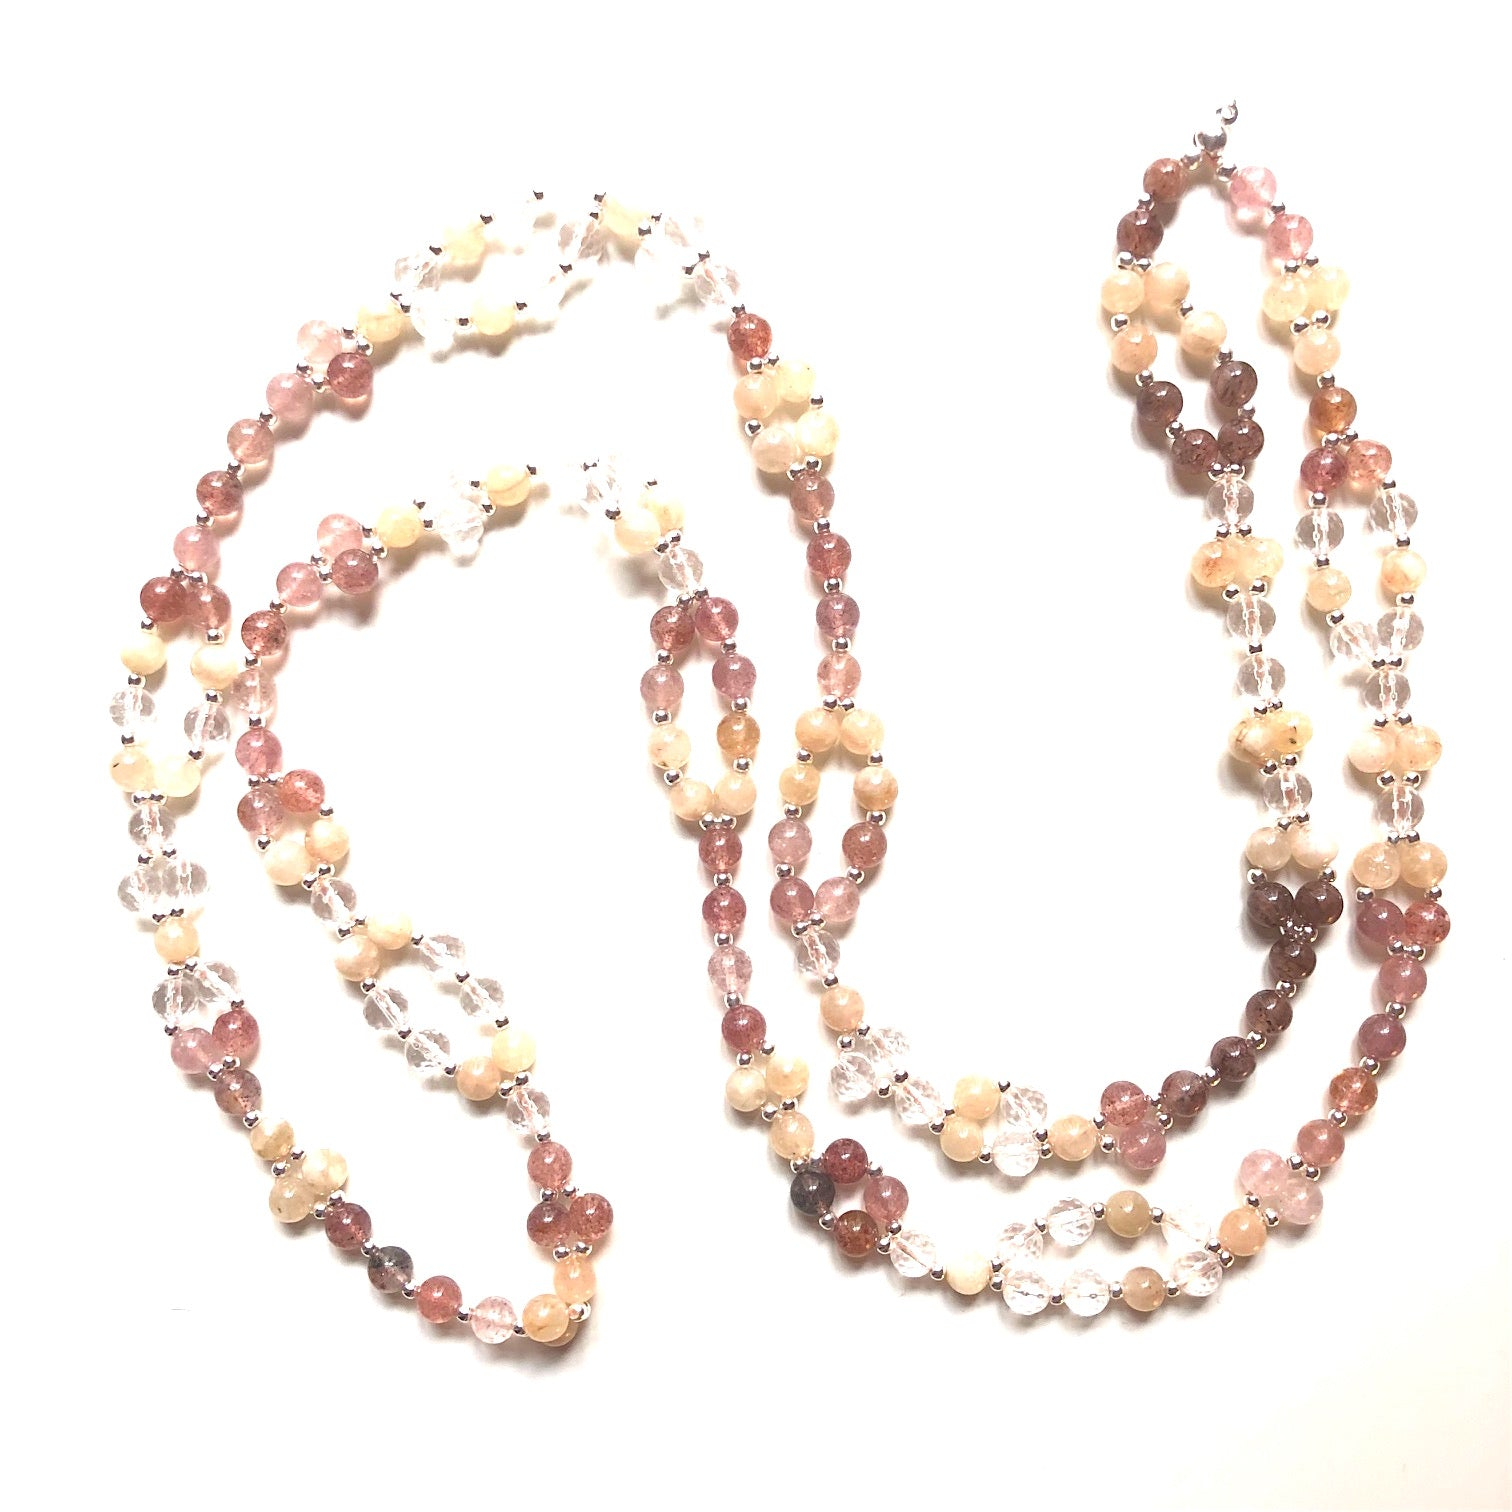 Tantric Mala Necklace: Strawberry Quartz, Sunstone, Crystal Quartz 6 mm.